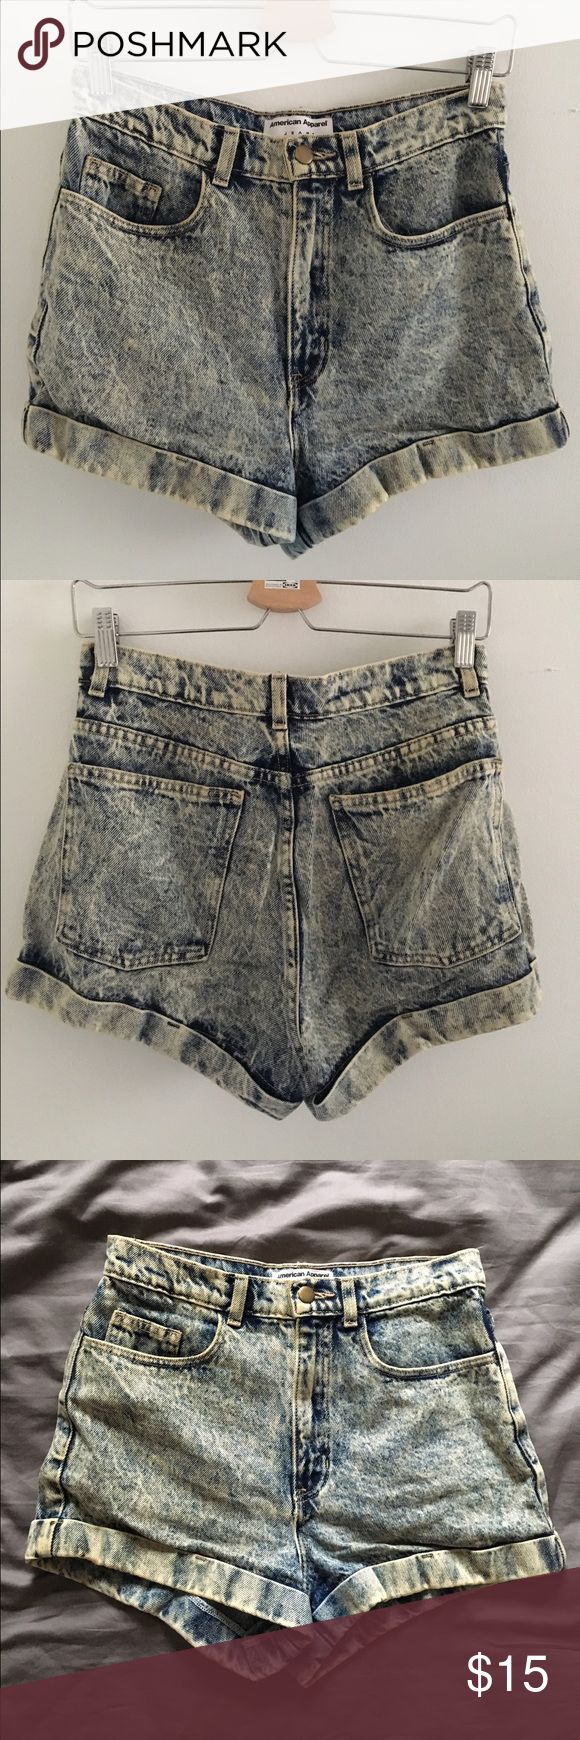 High-waisted acid wash shorts High-waisted acid wash shorts. Great condition. Sizing is equivalent to 4-6 US. American Apparel Shorts Jean Shorts